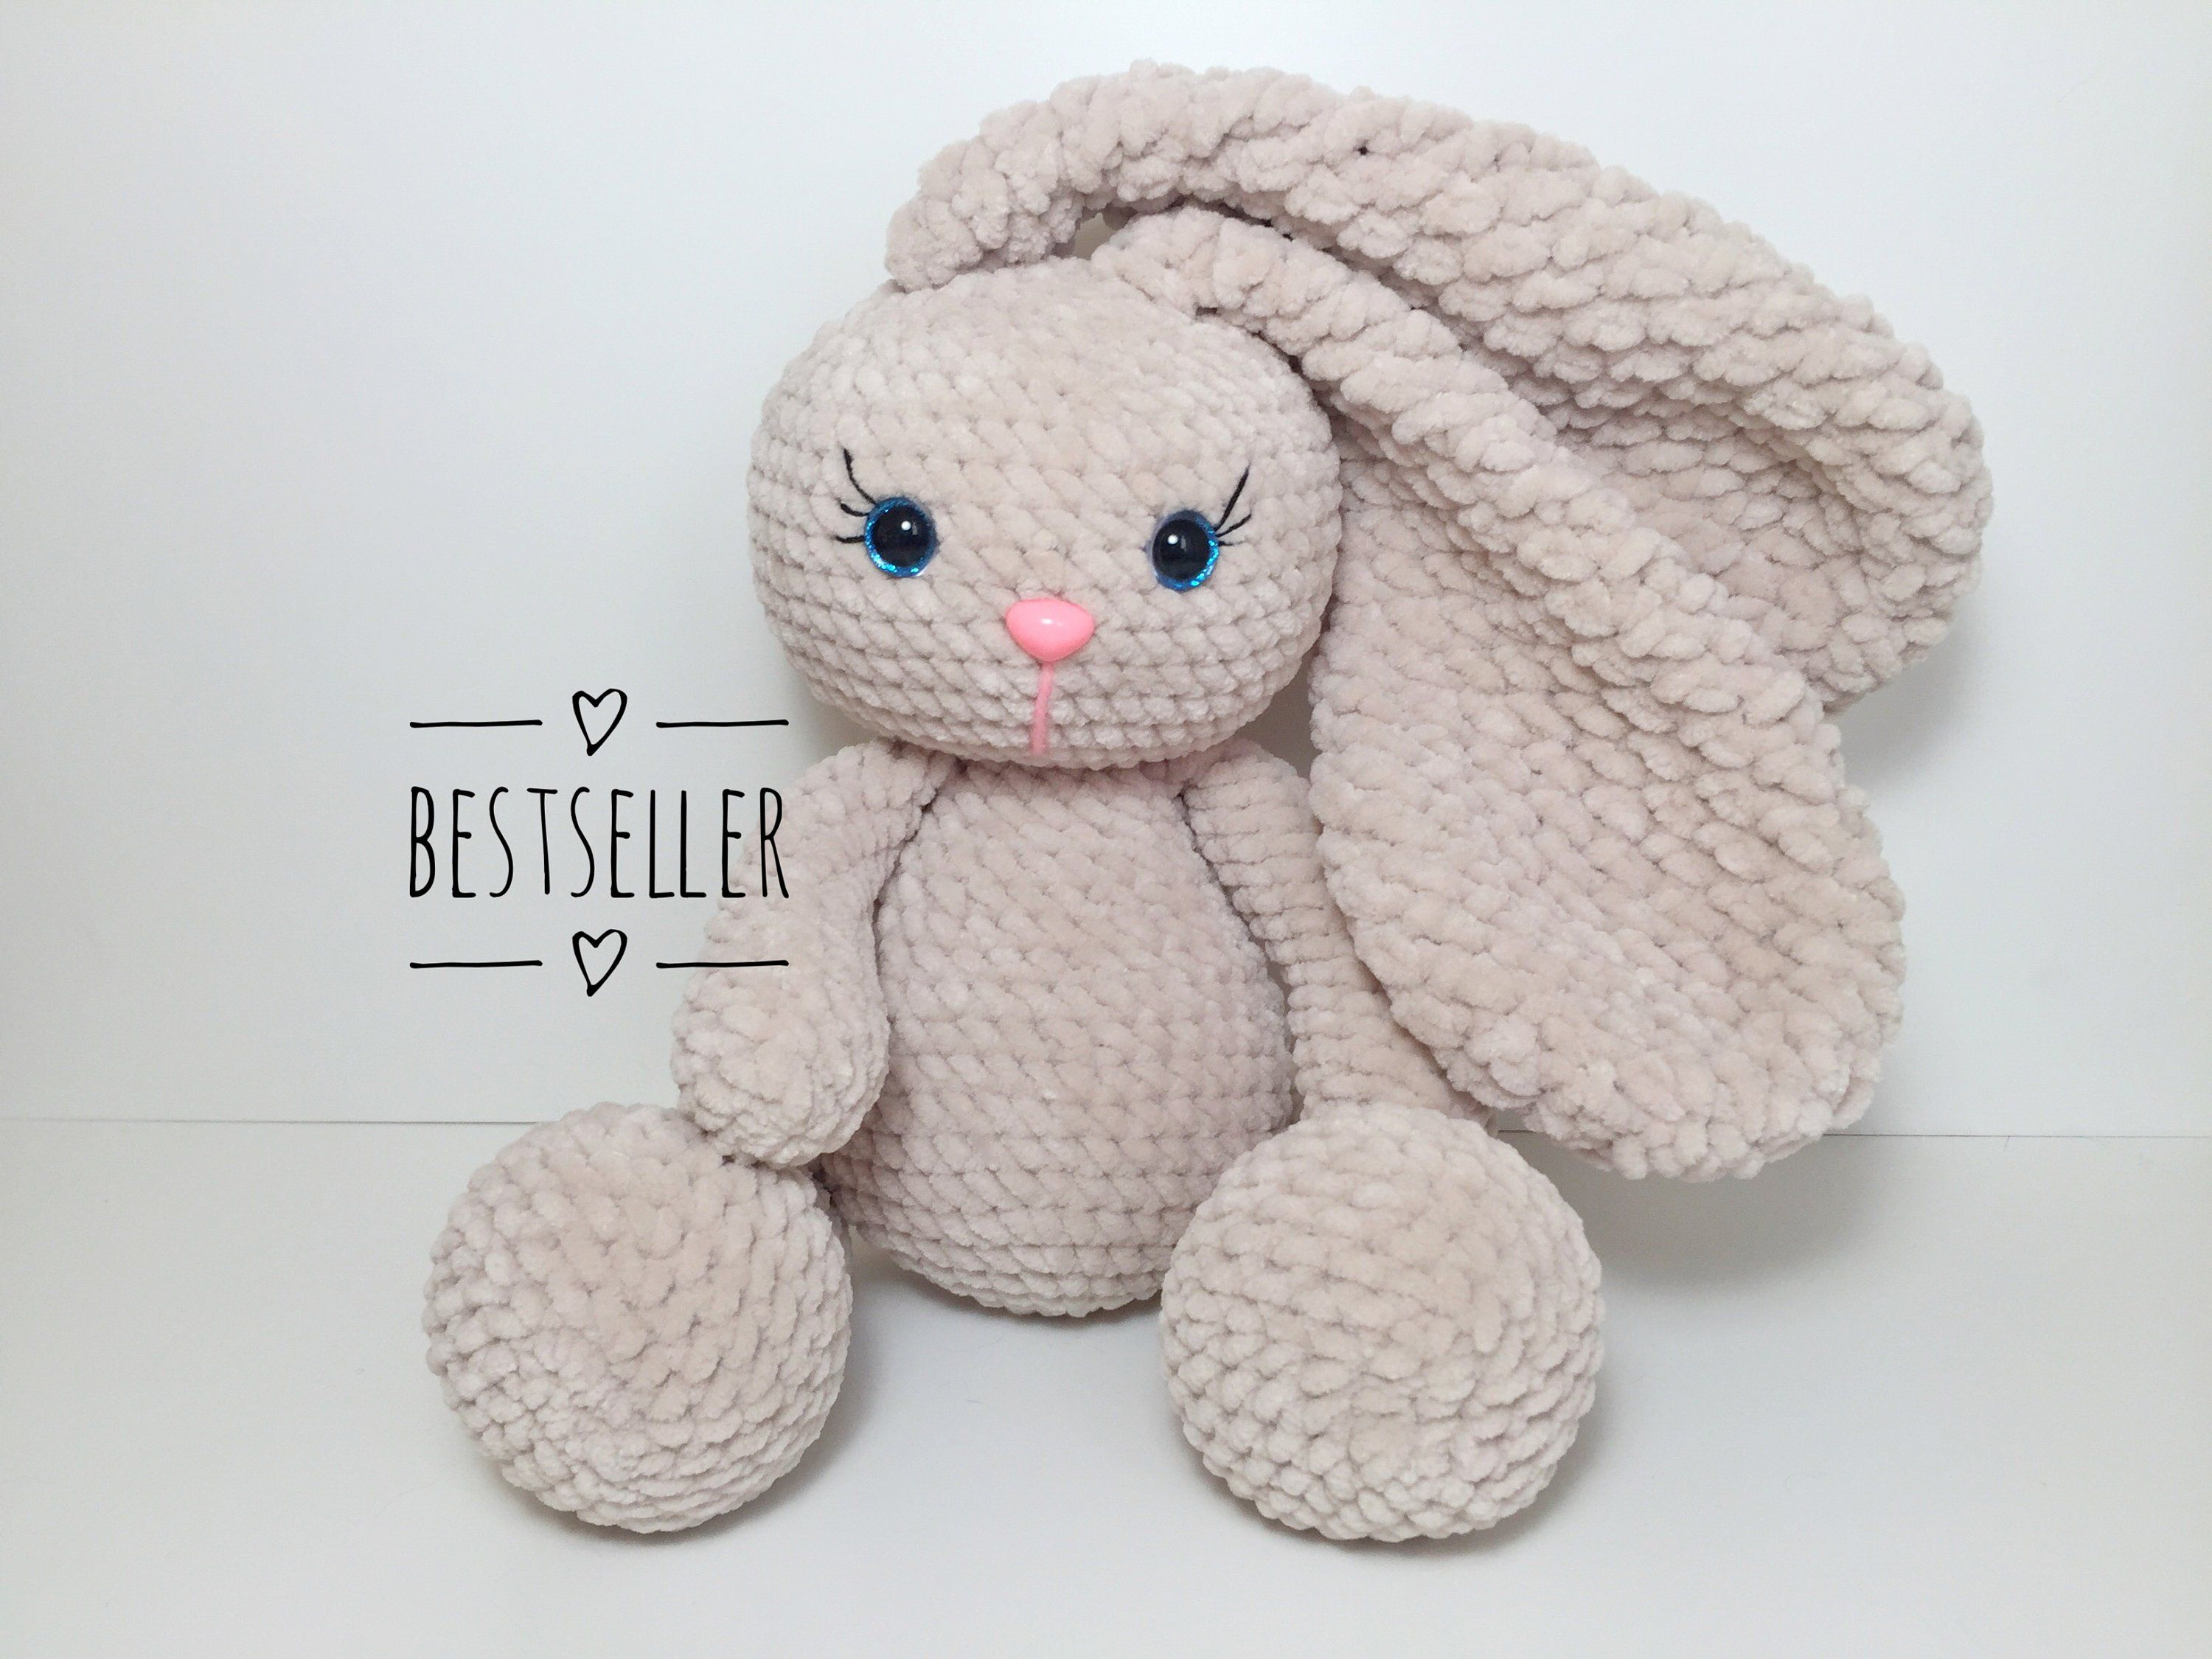 Lovely amigurumi crochet bunny, a personalized toy for newborn ... | 2250x3000